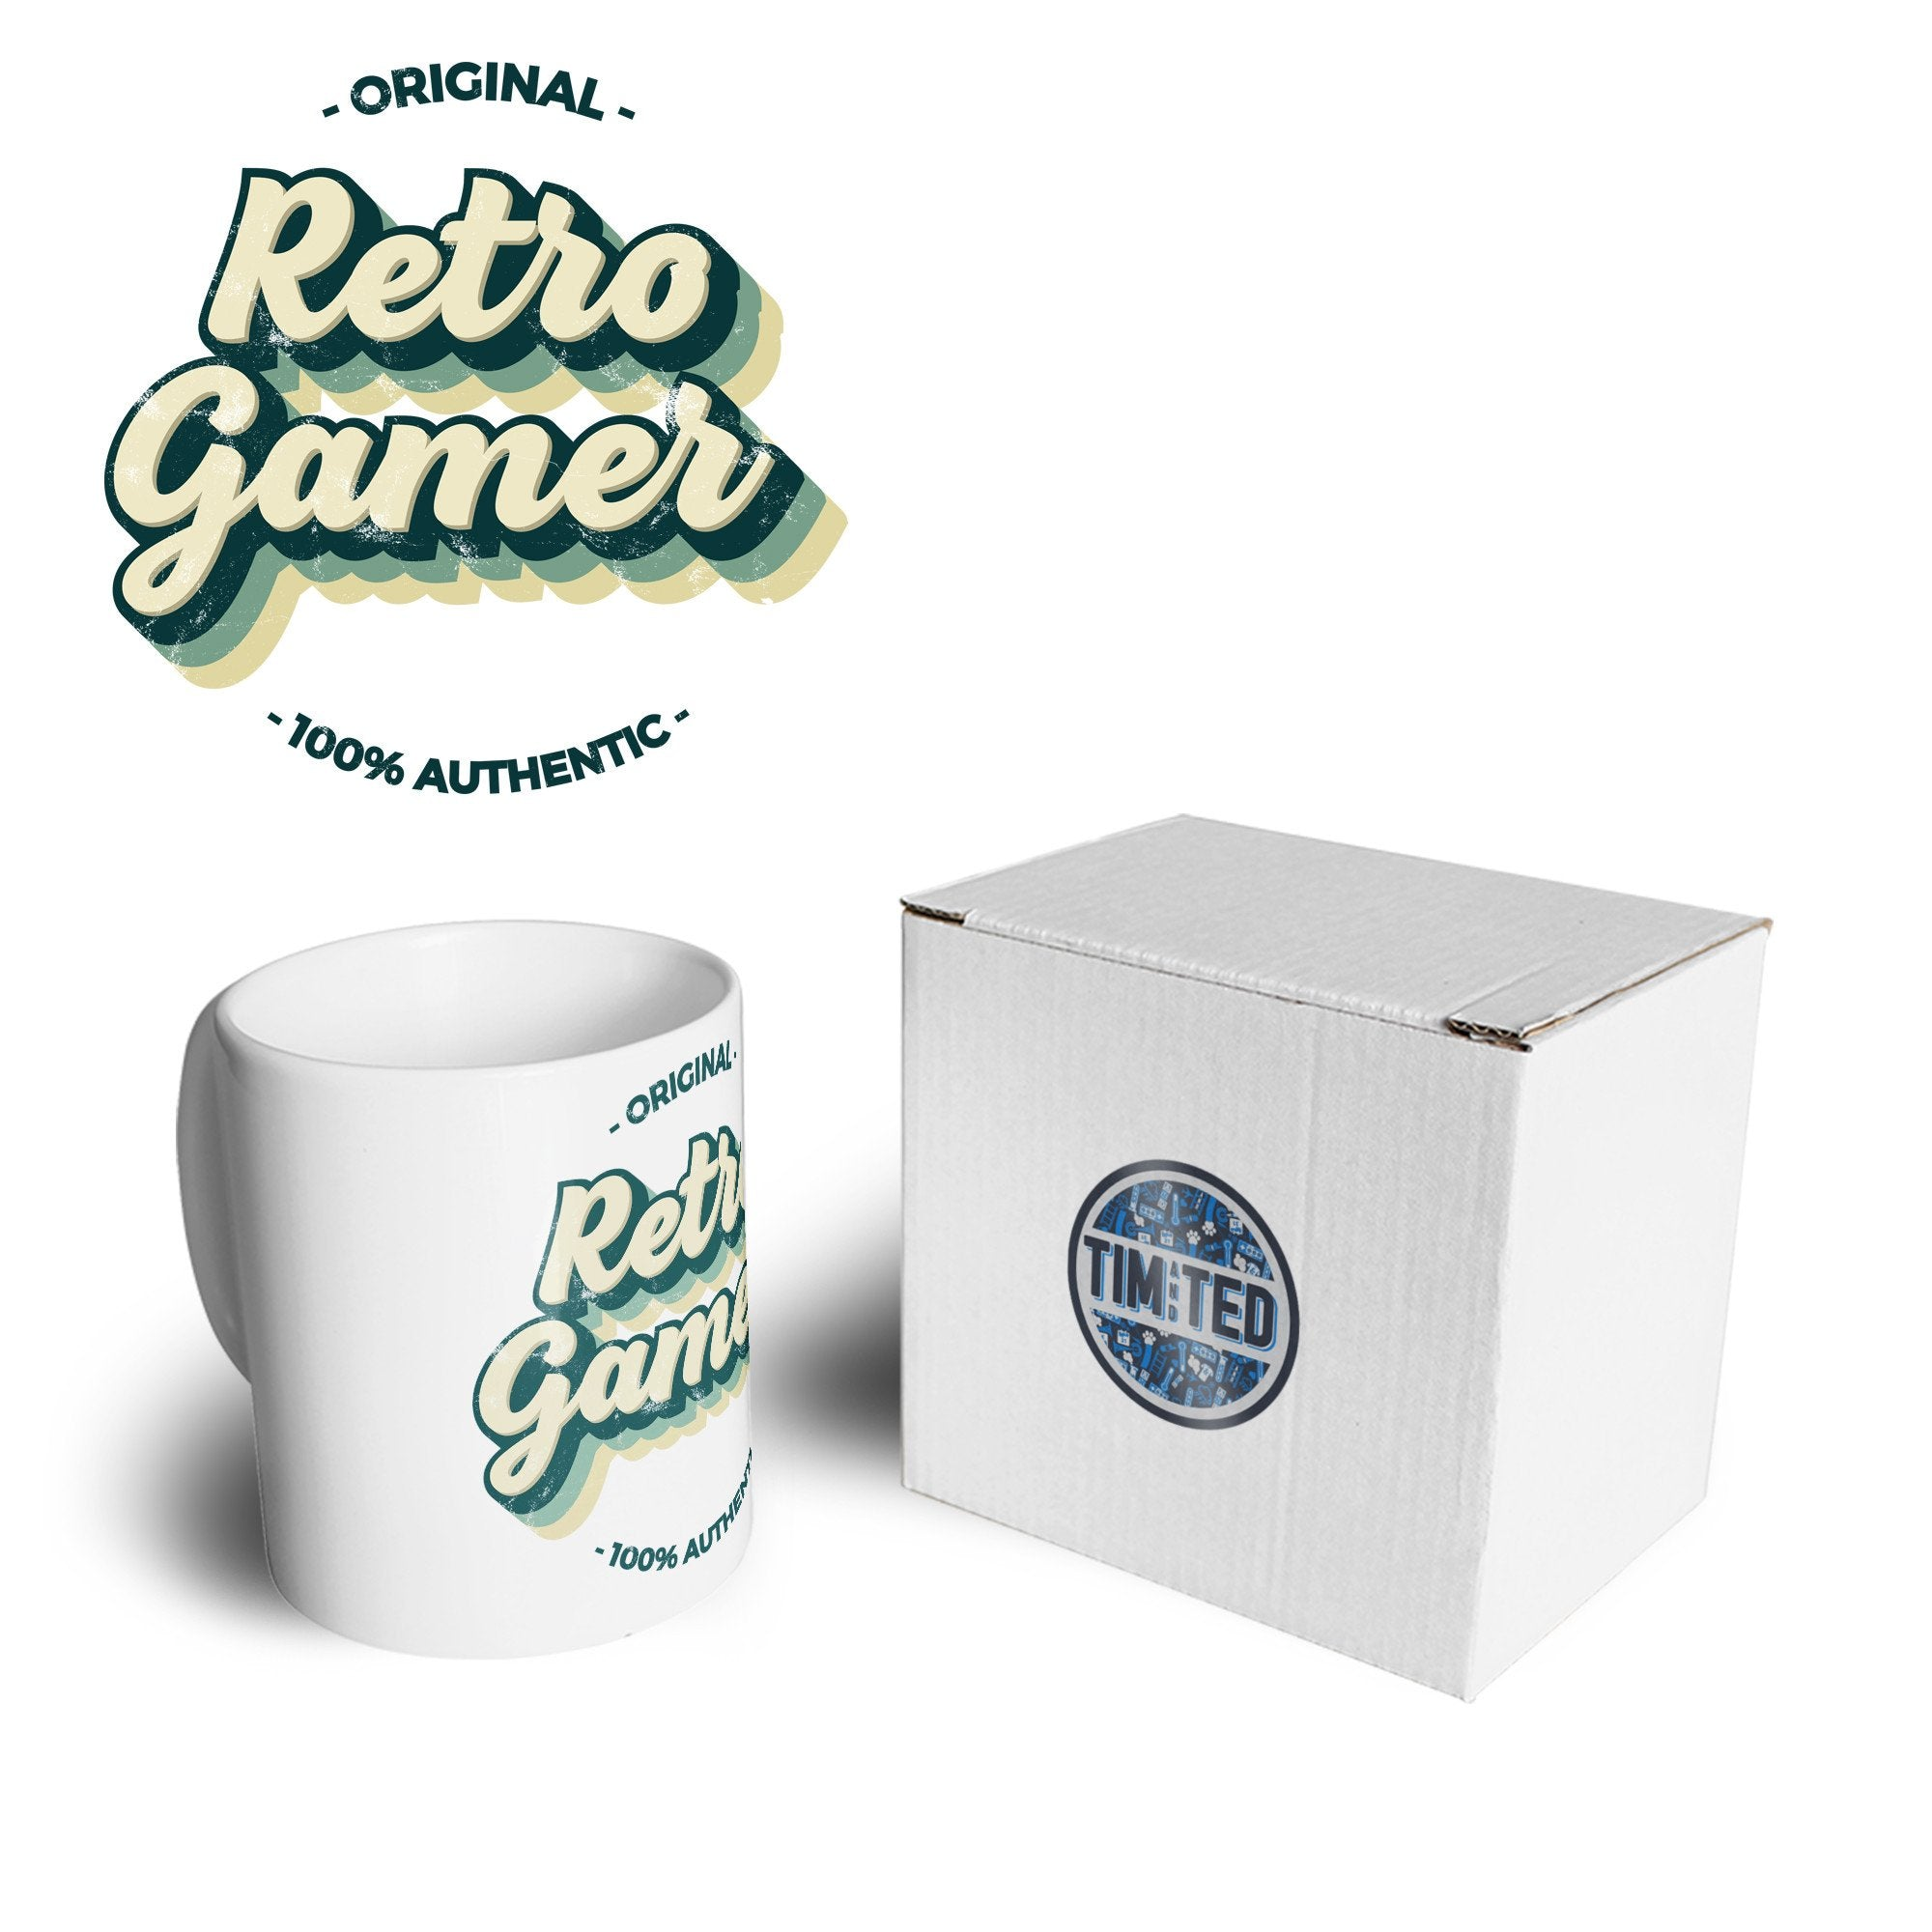 Novelty Mug Original Retro Gamer, 100% Authentic Coffee Tea Cup